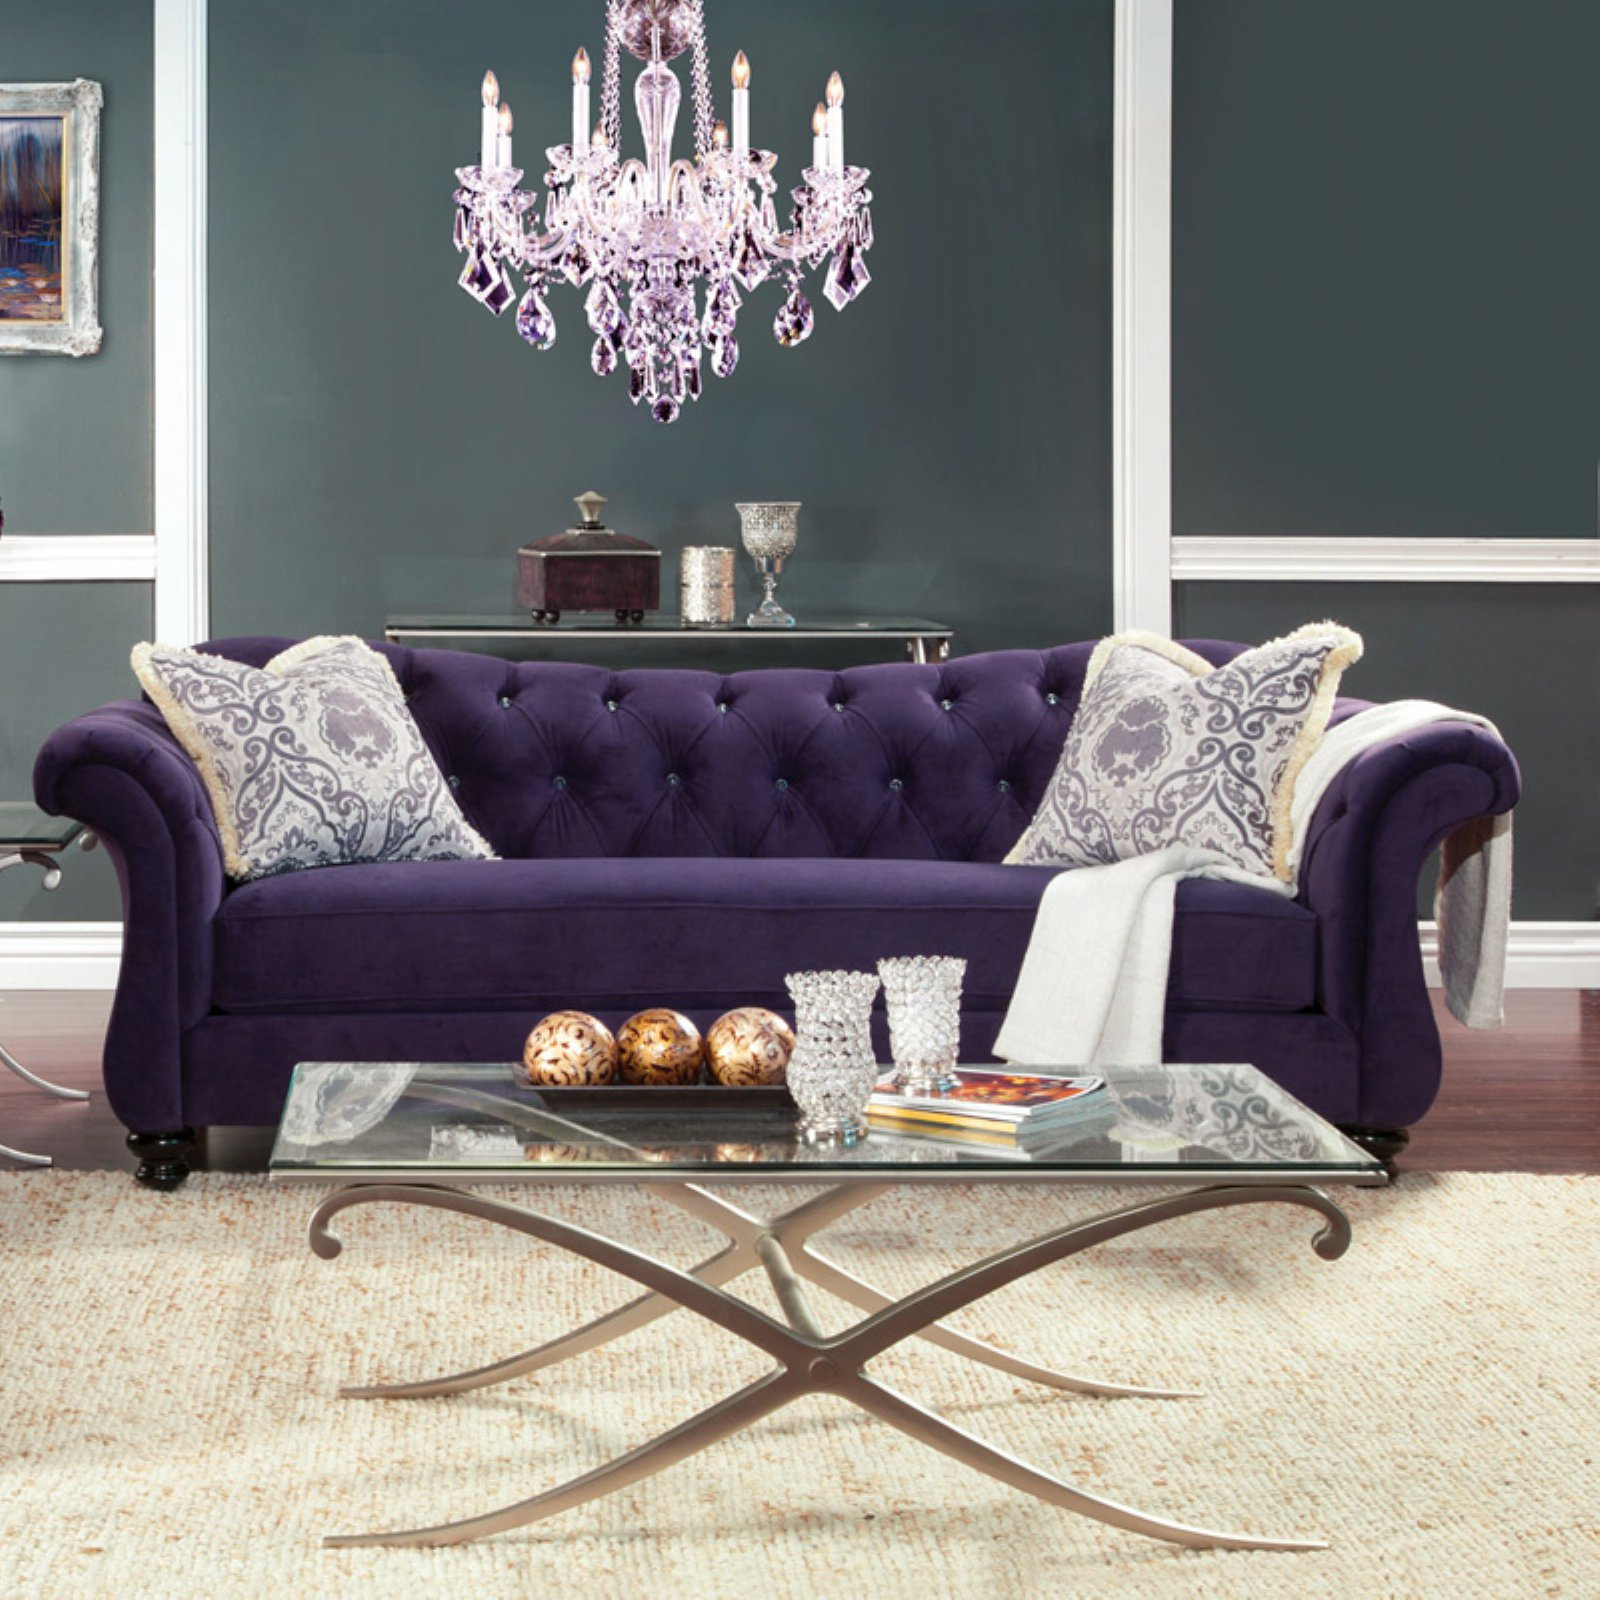 Furniture of America Wellington Premium Fabric Sofa - Purple